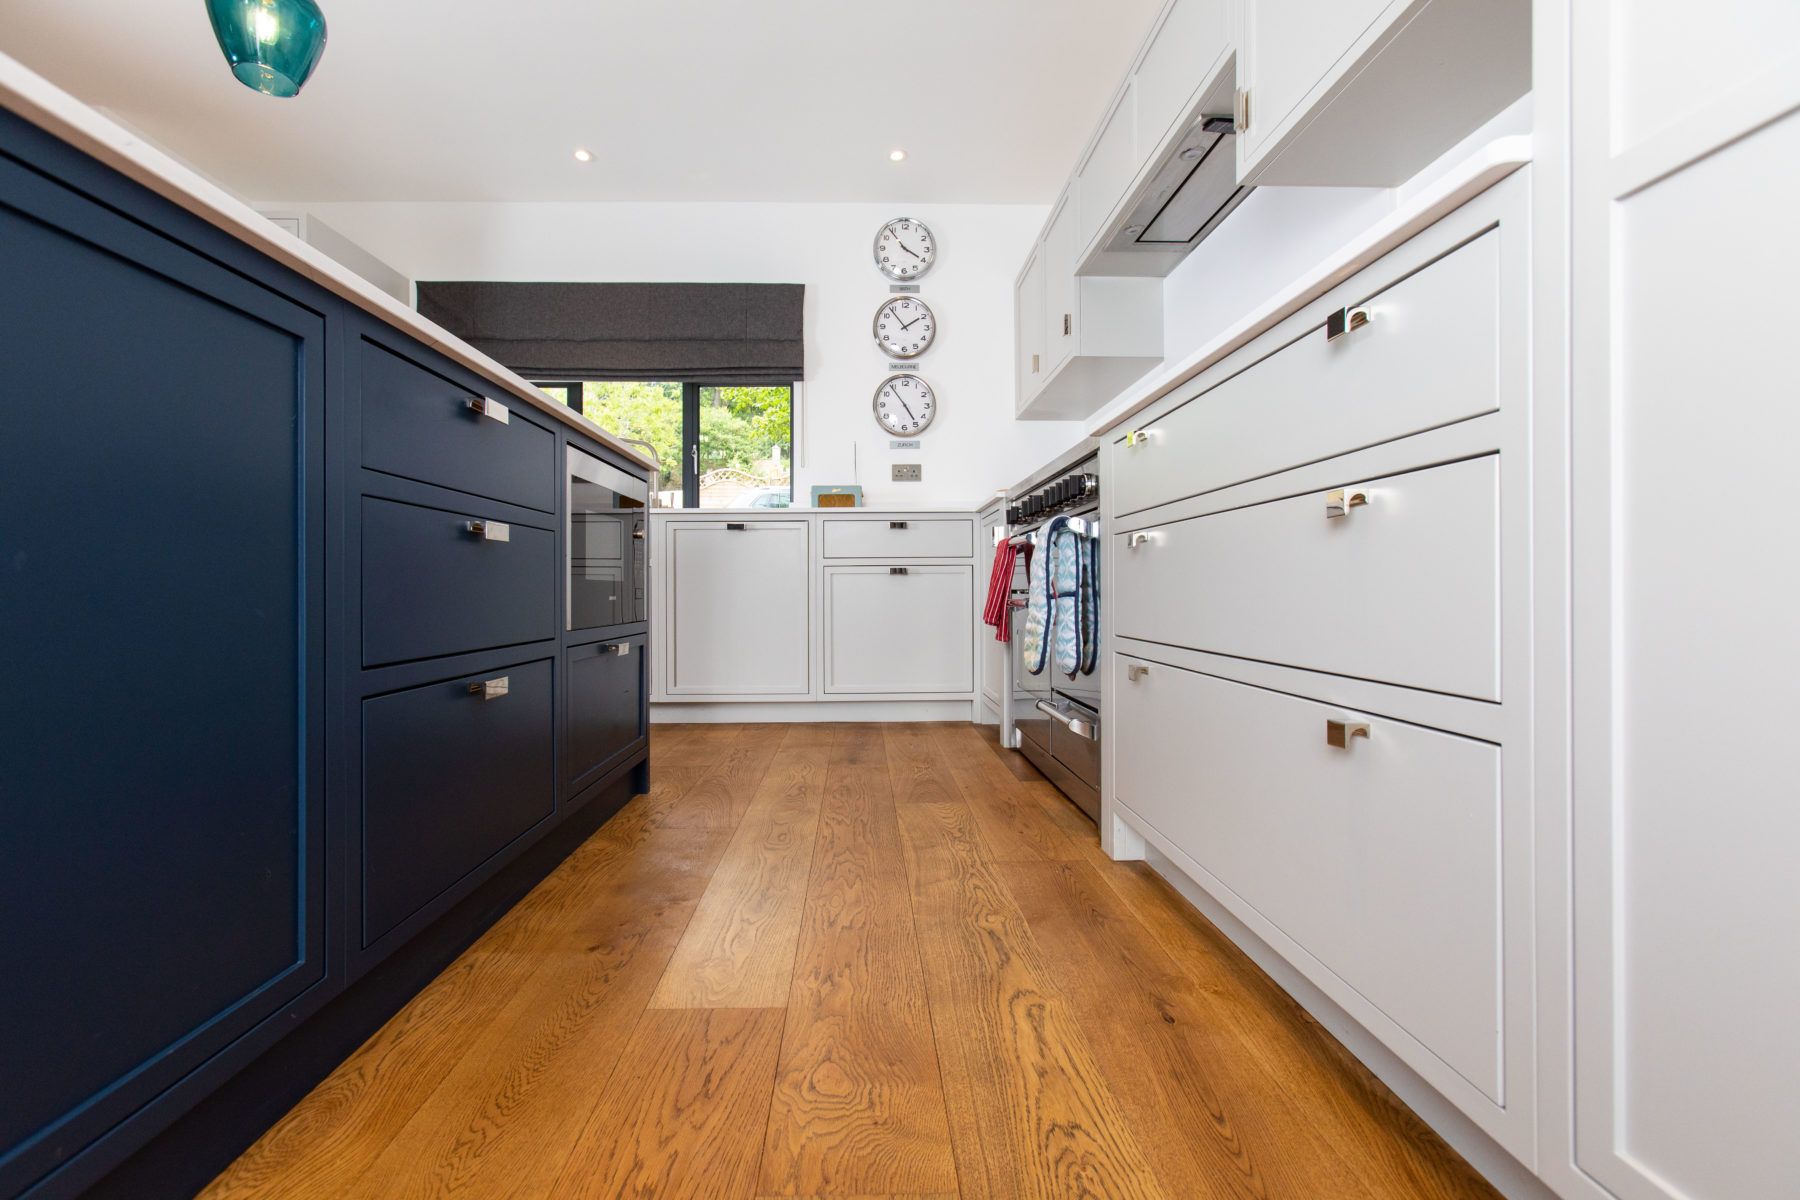 Modern Shaker kitchen with plank flooring